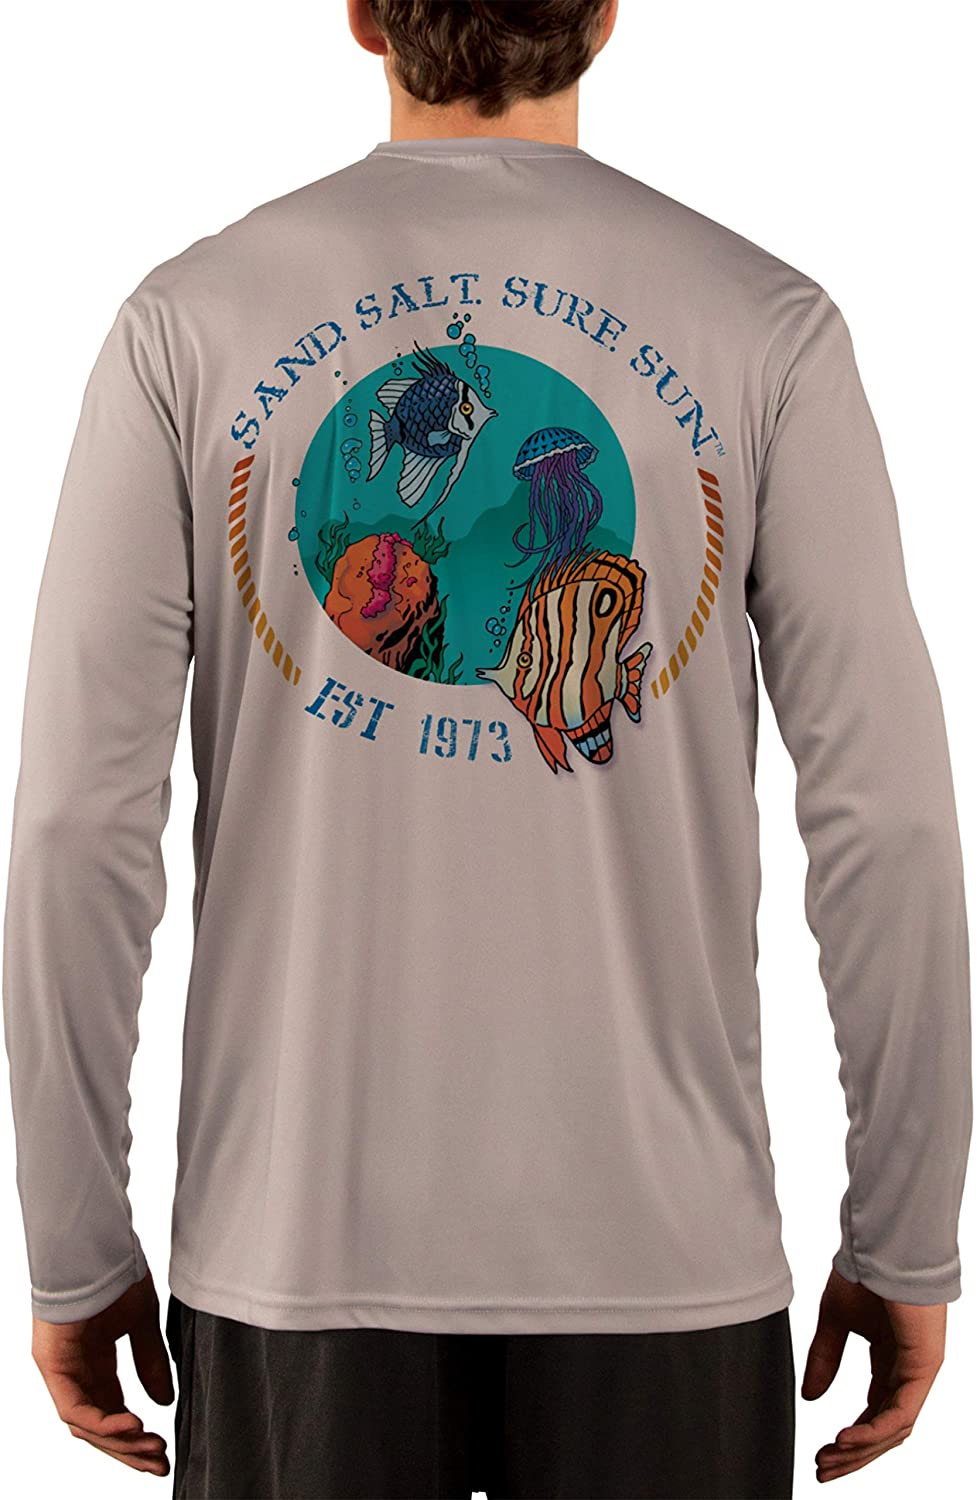 SAND.SALT.SURF.SUN. Tropical Fish Men's UPF 50+ UV Sun Protection Performance Long Sleeve T-Shirt